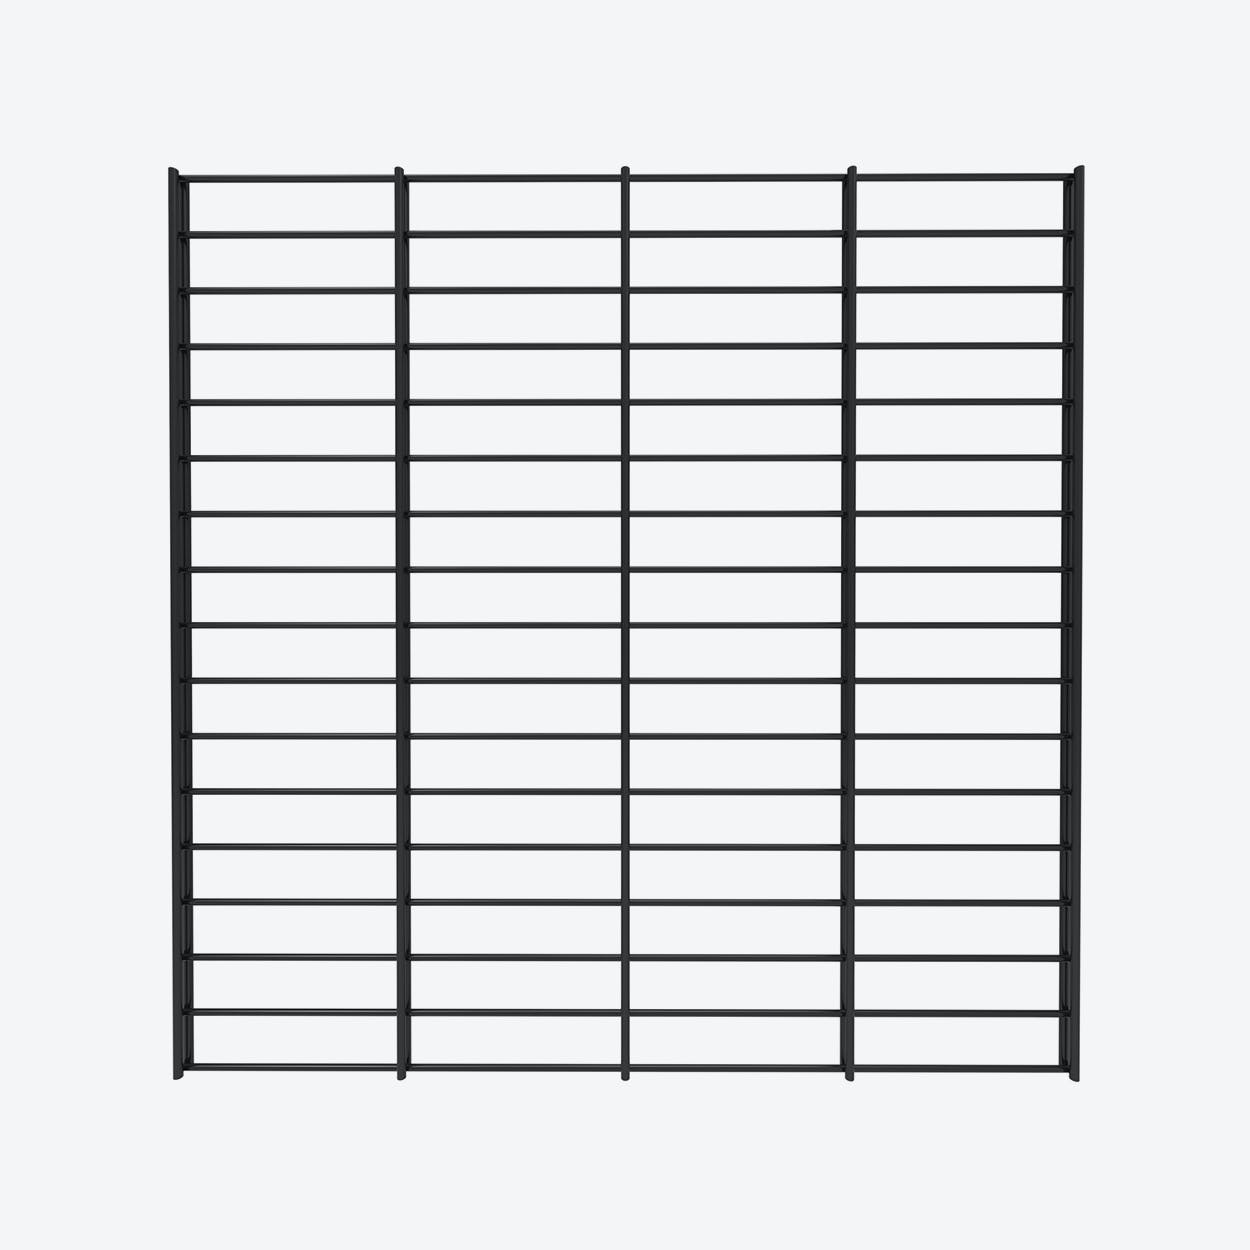 Fency Rack, 80x80 in Black